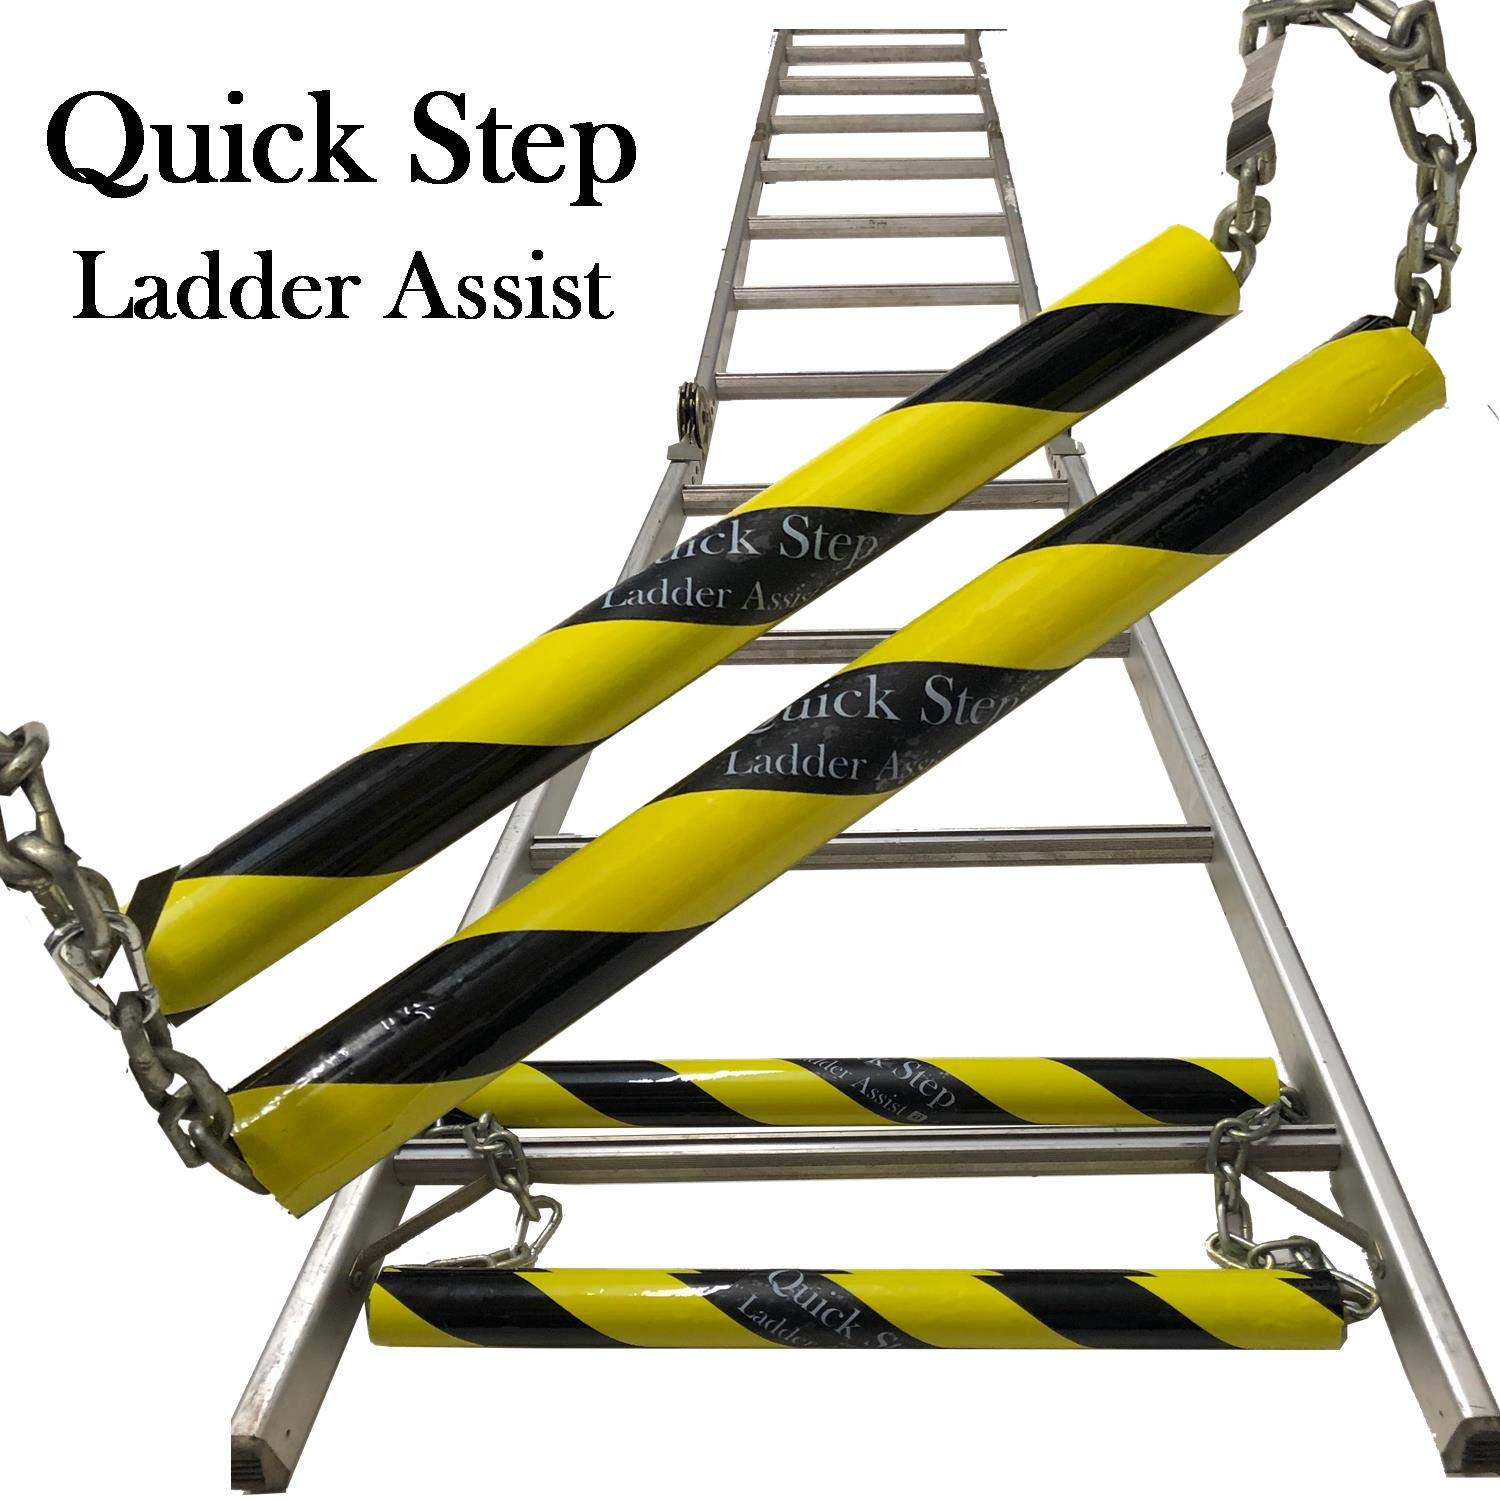 Quick Step Ladder Assist ~Put Up Your Extension Ladder Fast & Easy Like A Professional Multi Use Portable Ladder Folding Ladder